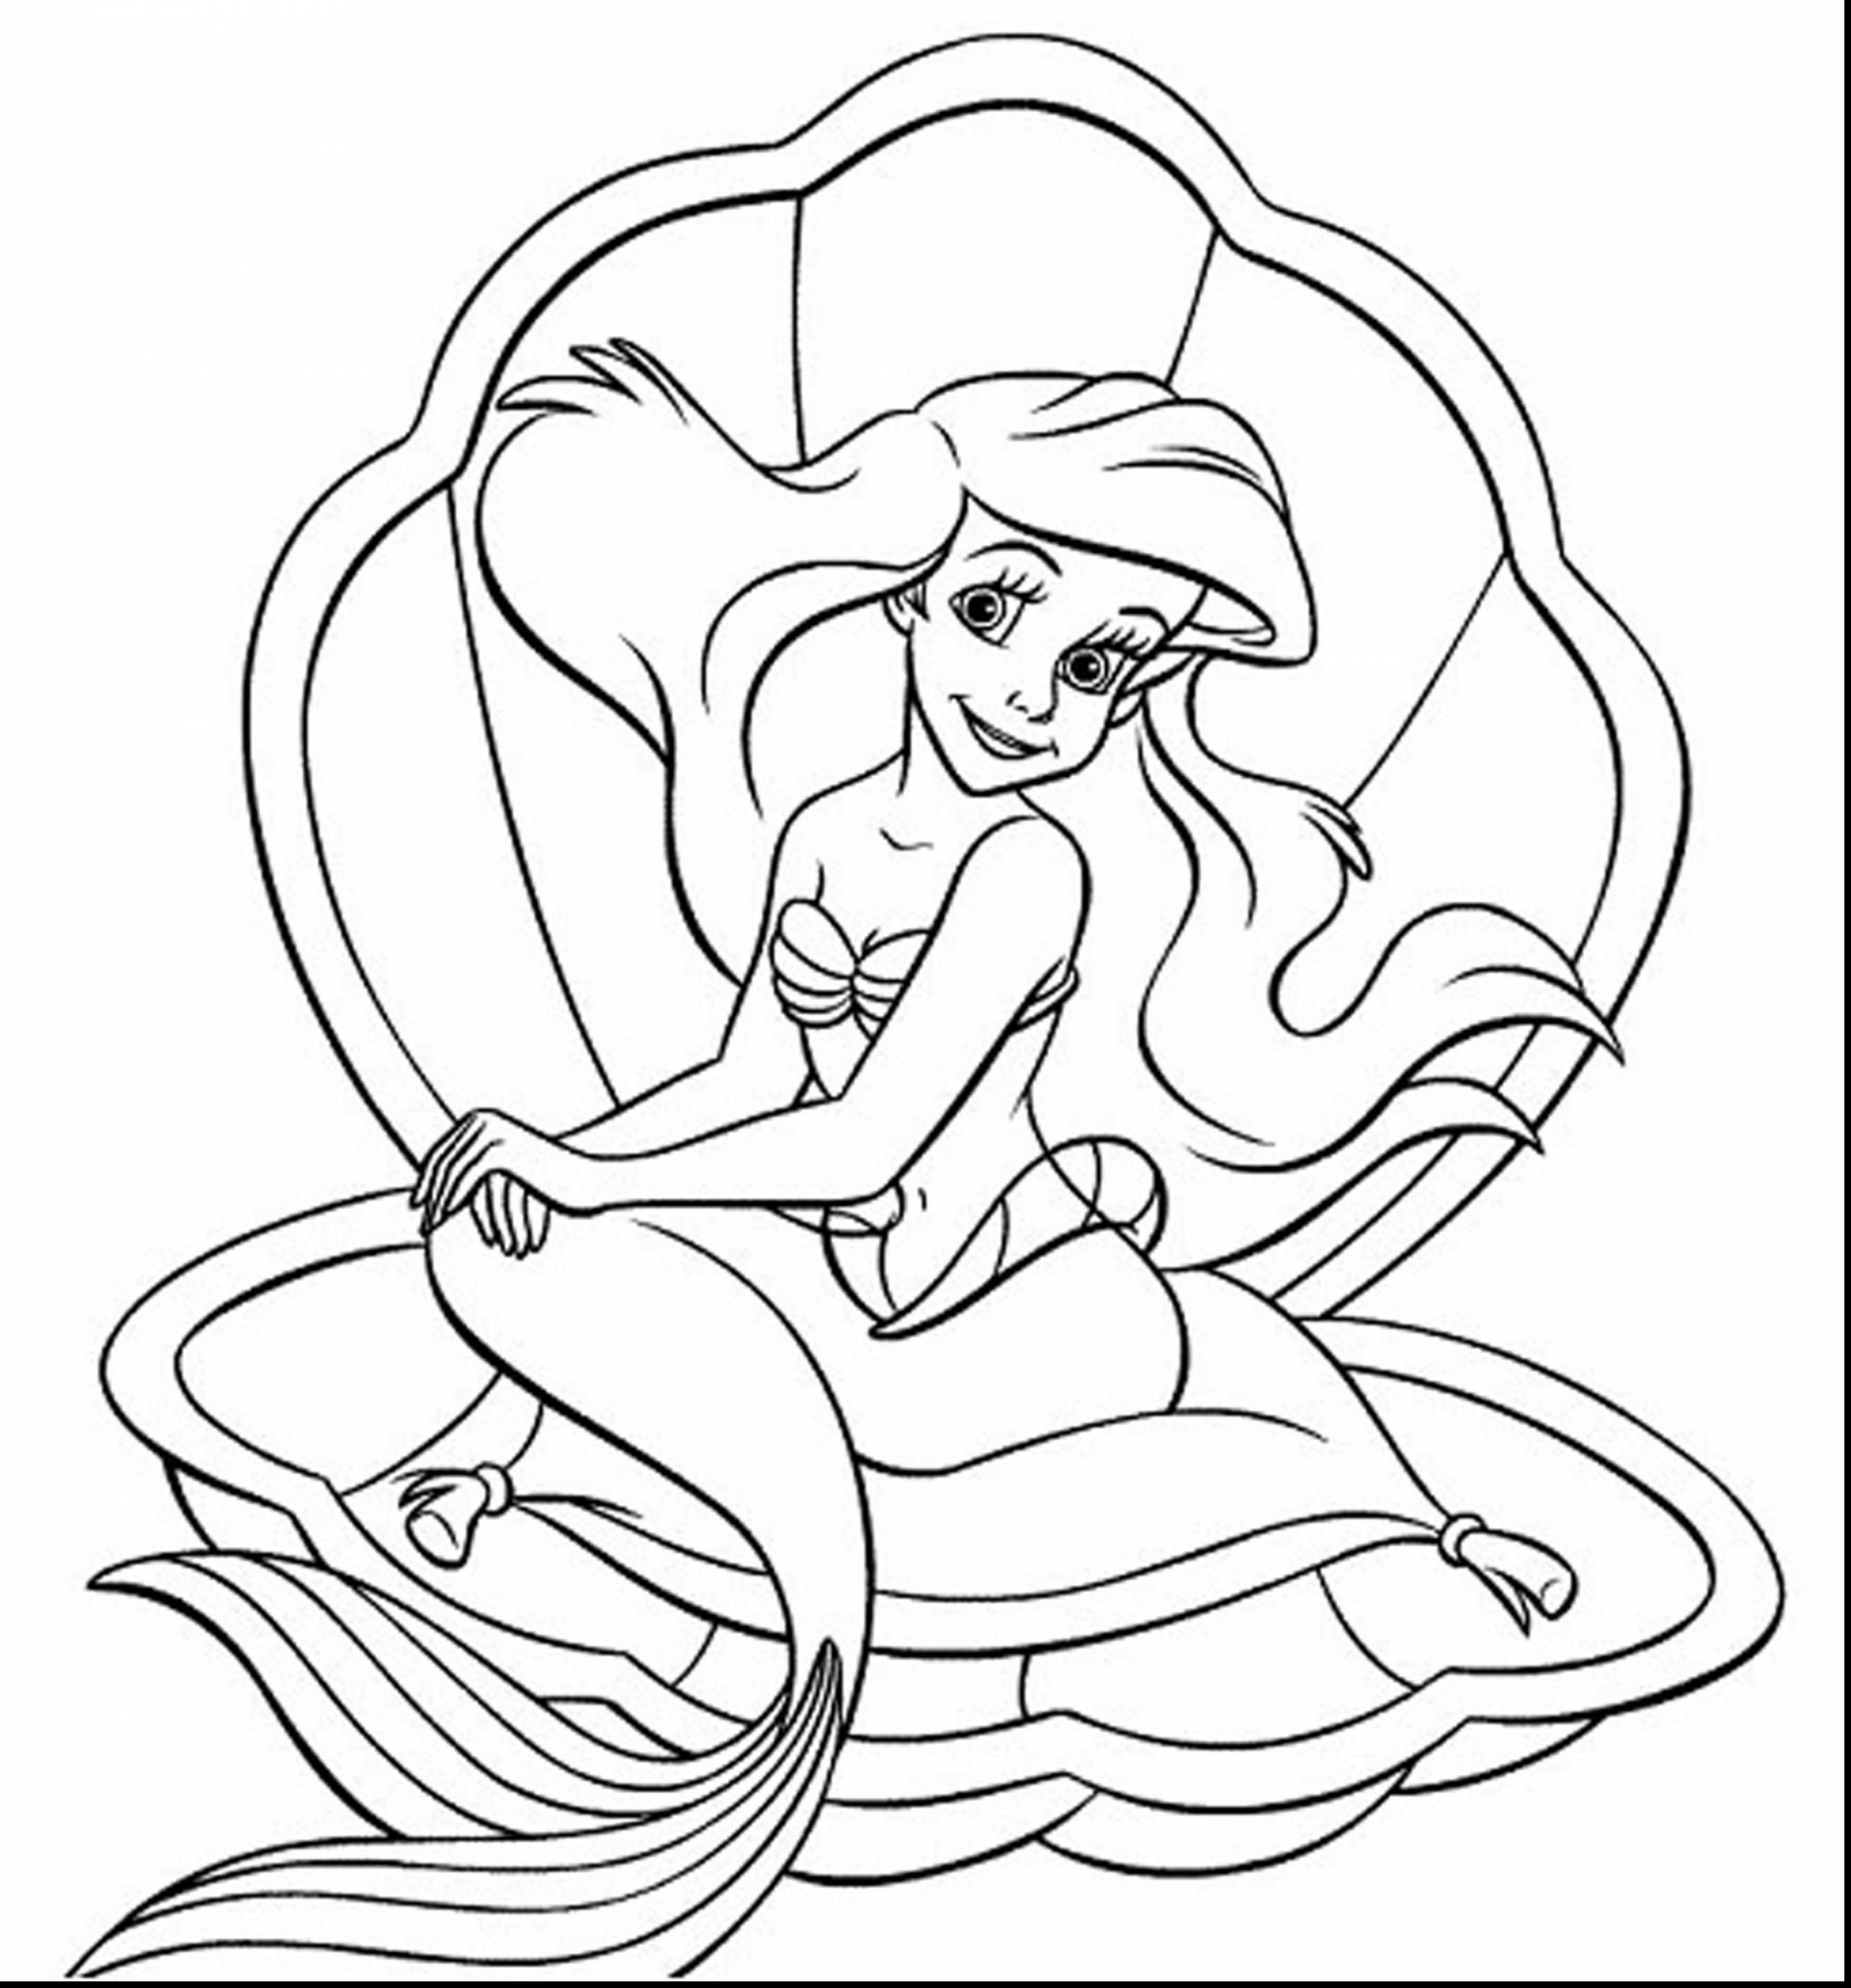 princess sophia coloring pages sofia the first coloring pages coloring princess pages sophia